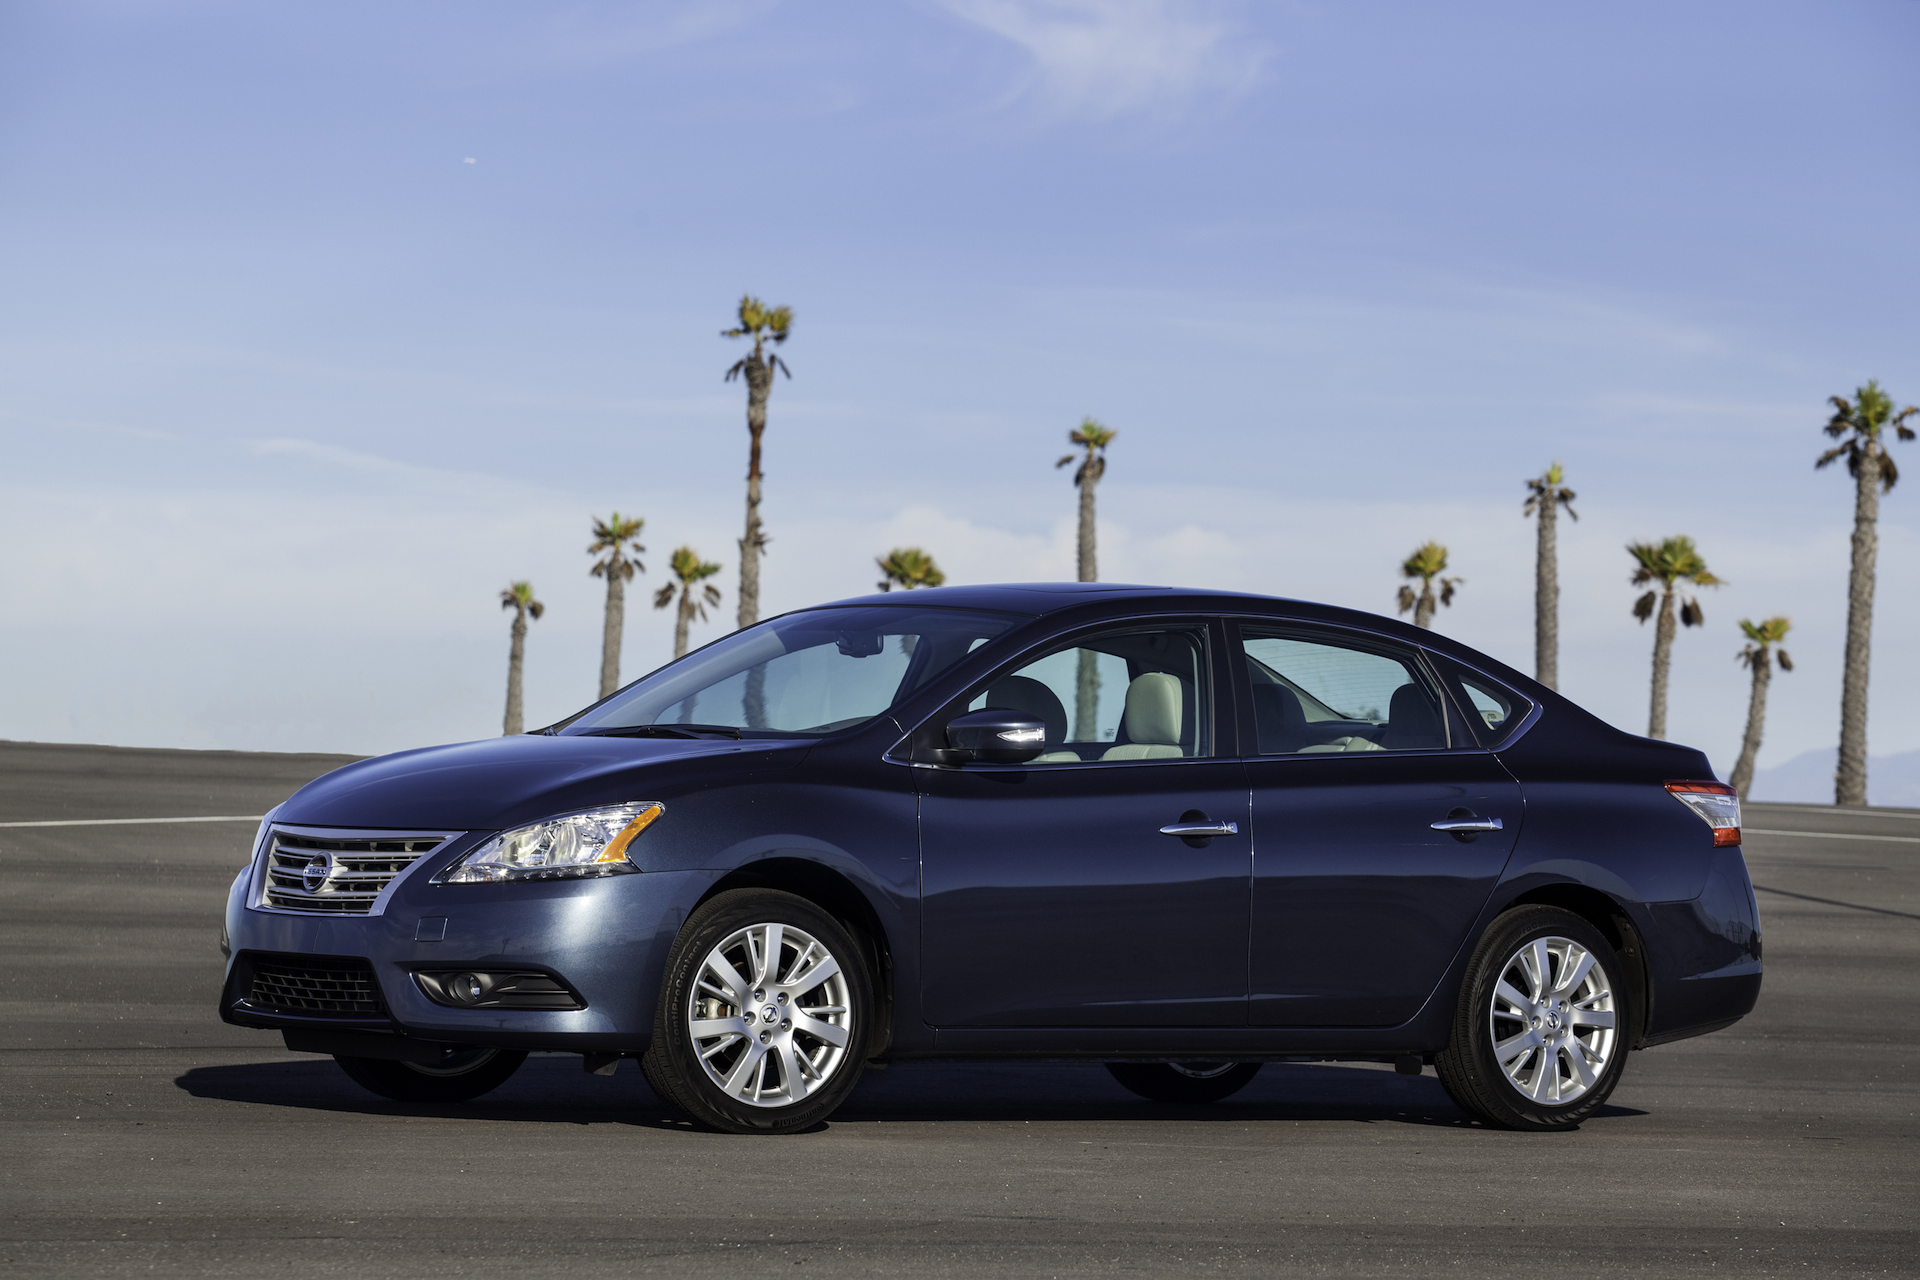 2016 Nissan Sentra Mpg >> 2015 Nissan Sentra Review Ratings Specs Prices And